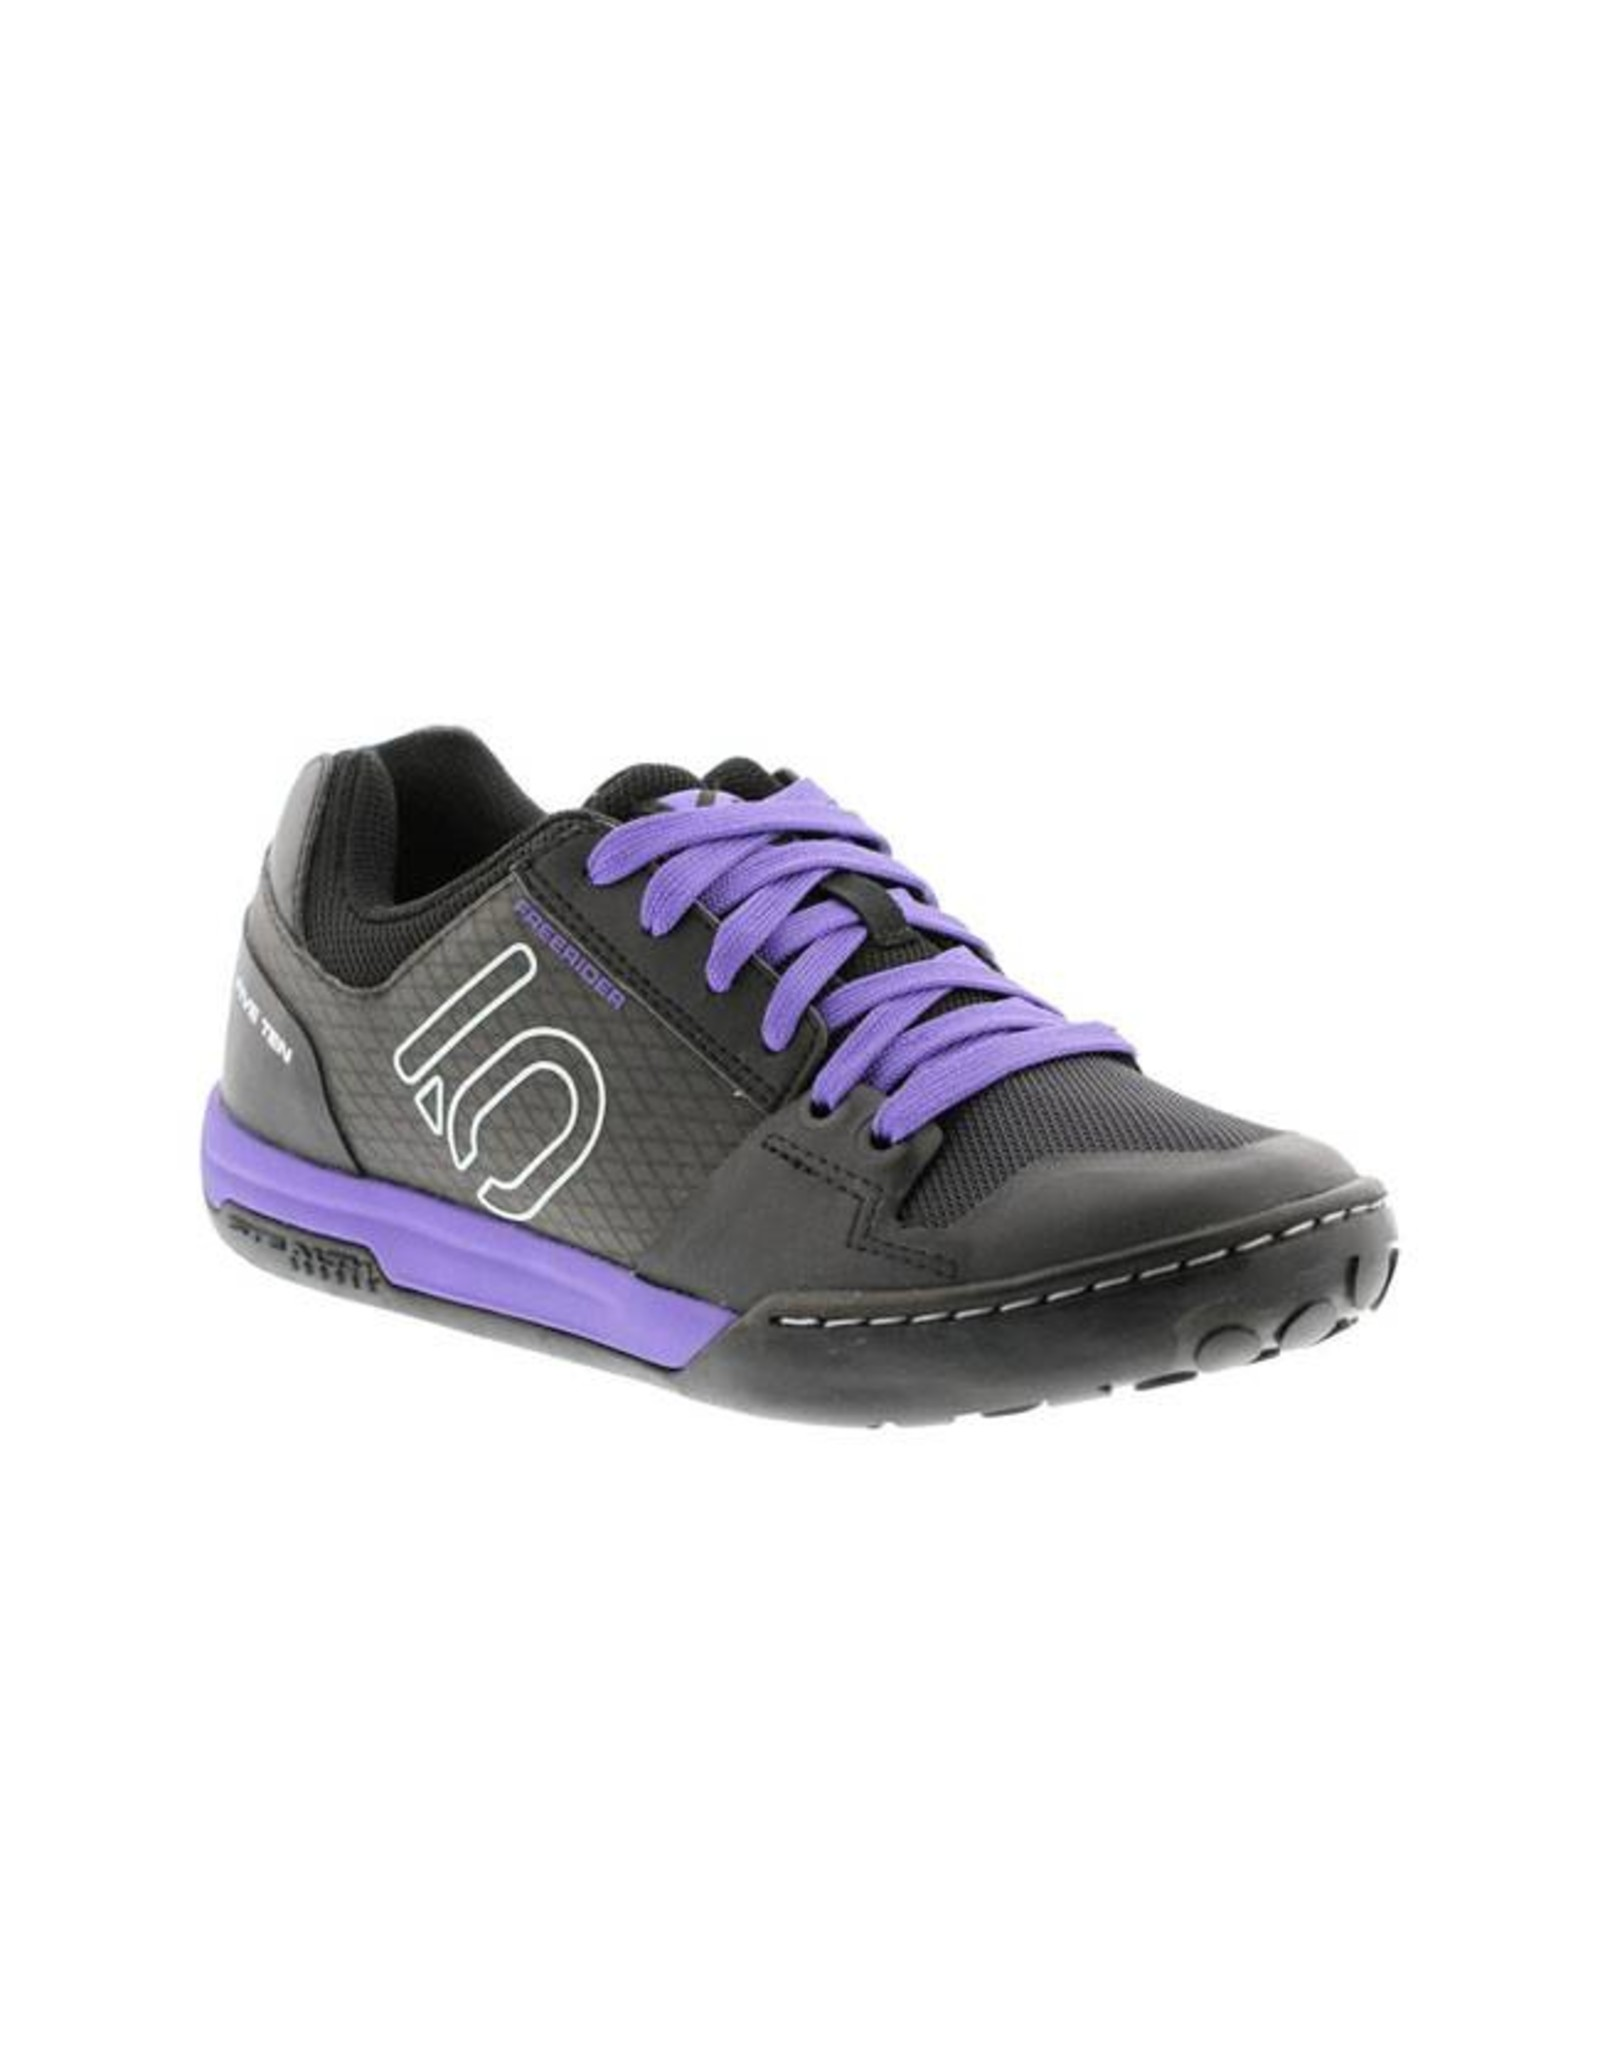 Five Ten Five Ten Freerider Contact Women's Flat Pedal Shoe: Split Purple 7